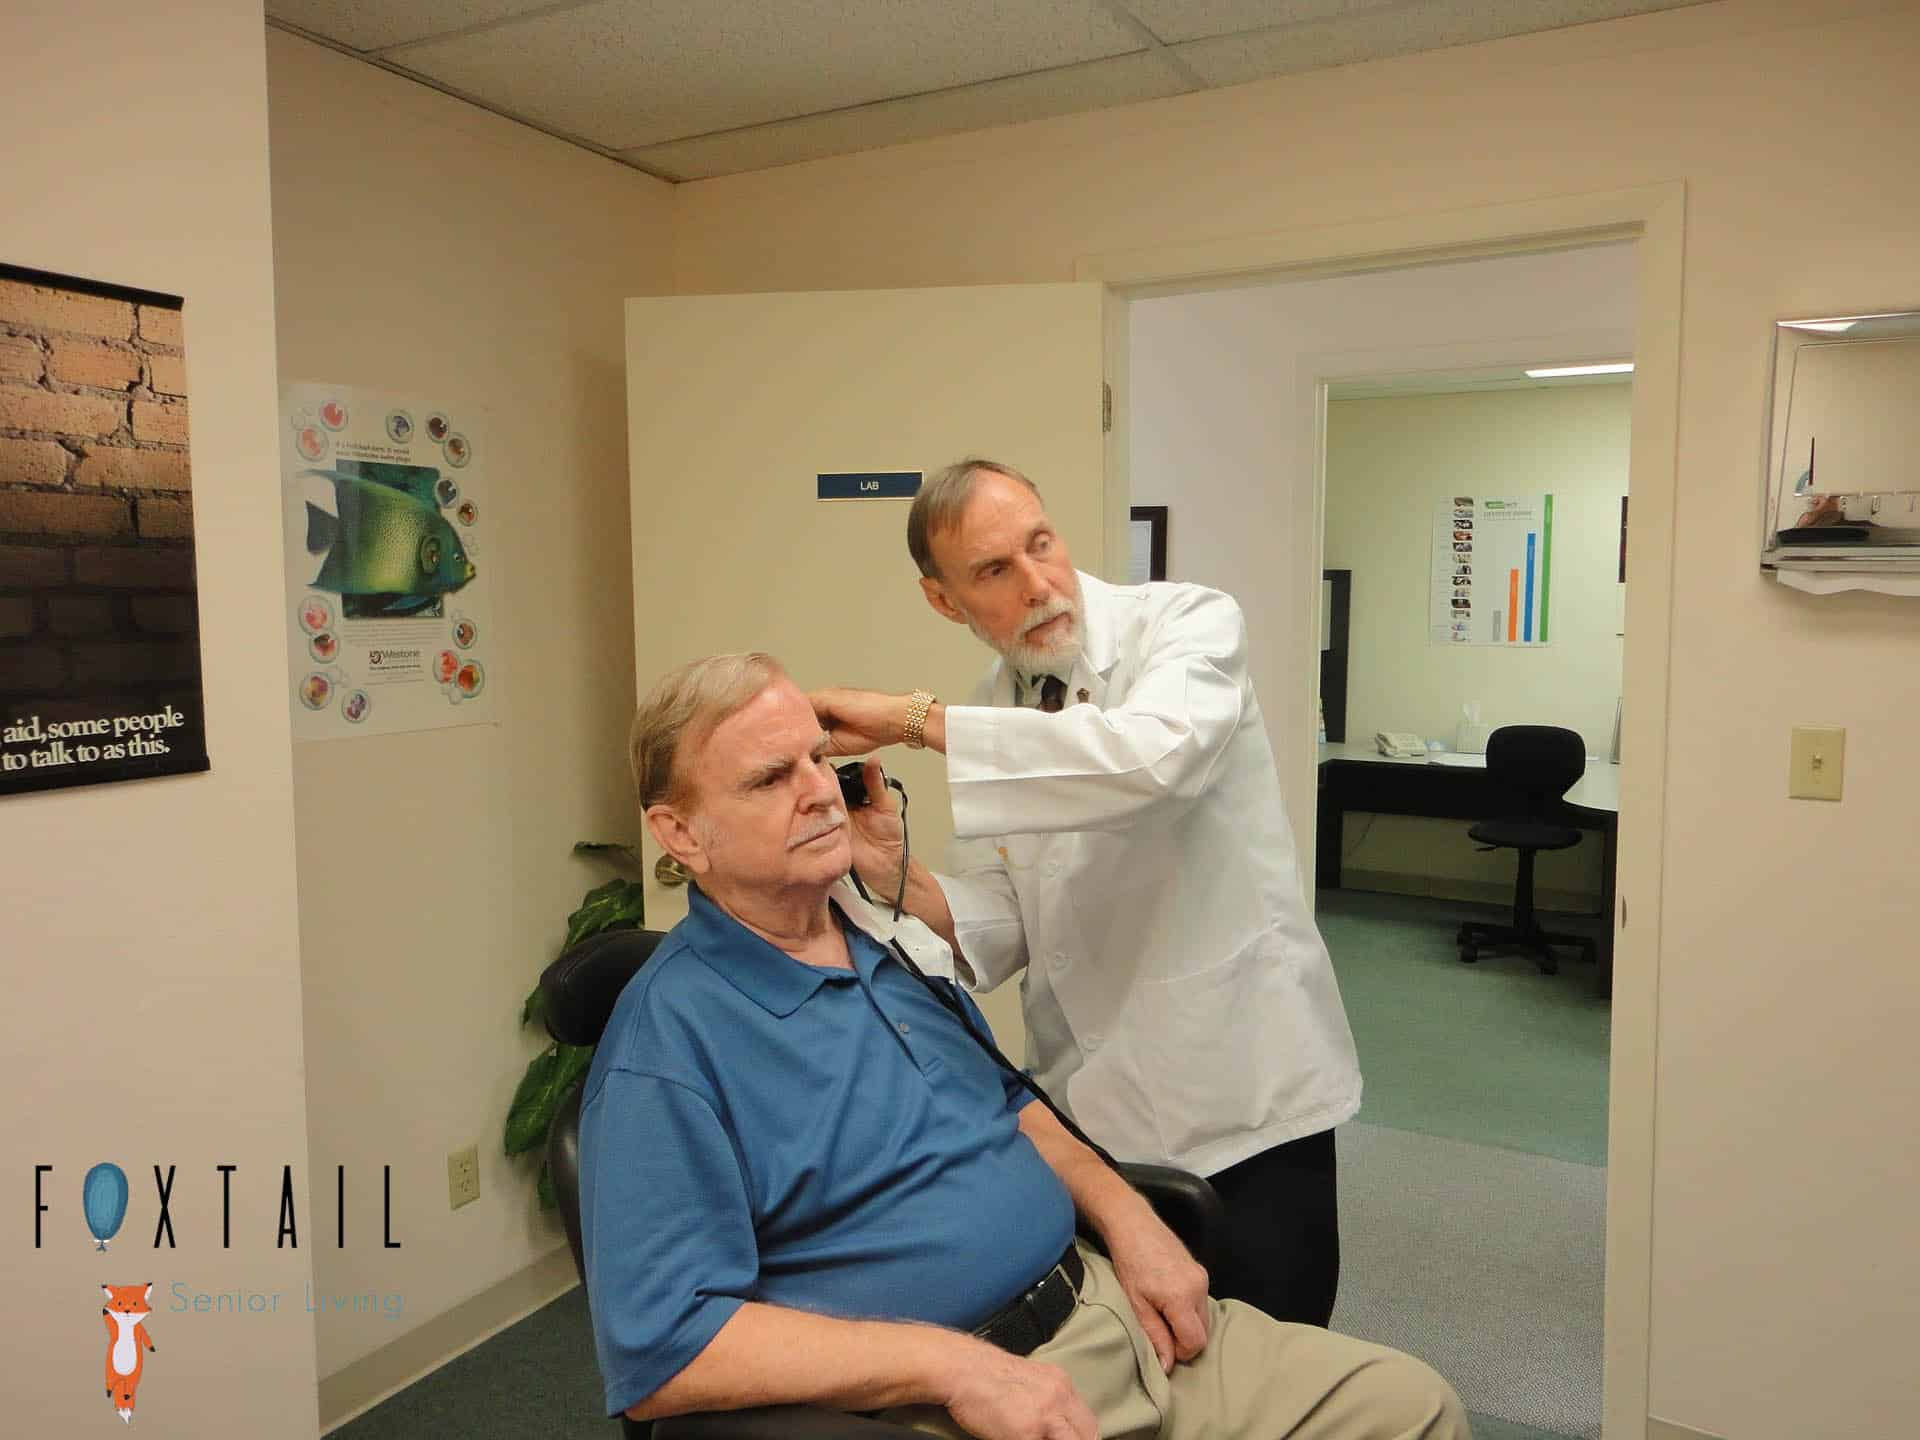 Elderly man getting a hearing test in a doctor's office.